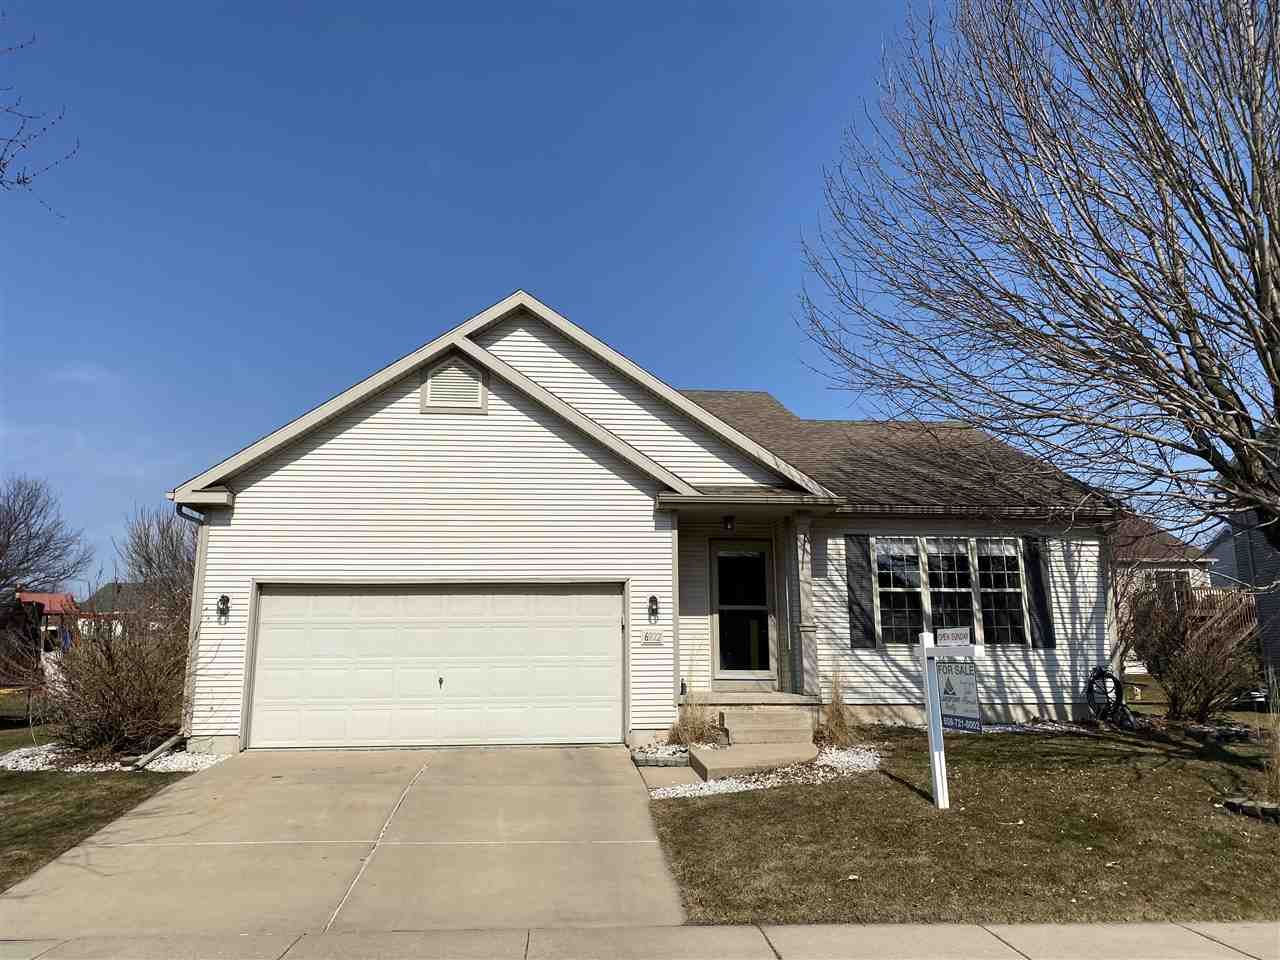 6922 Mill Bluff Dr, Madison, WI 53704 - #: 1875402